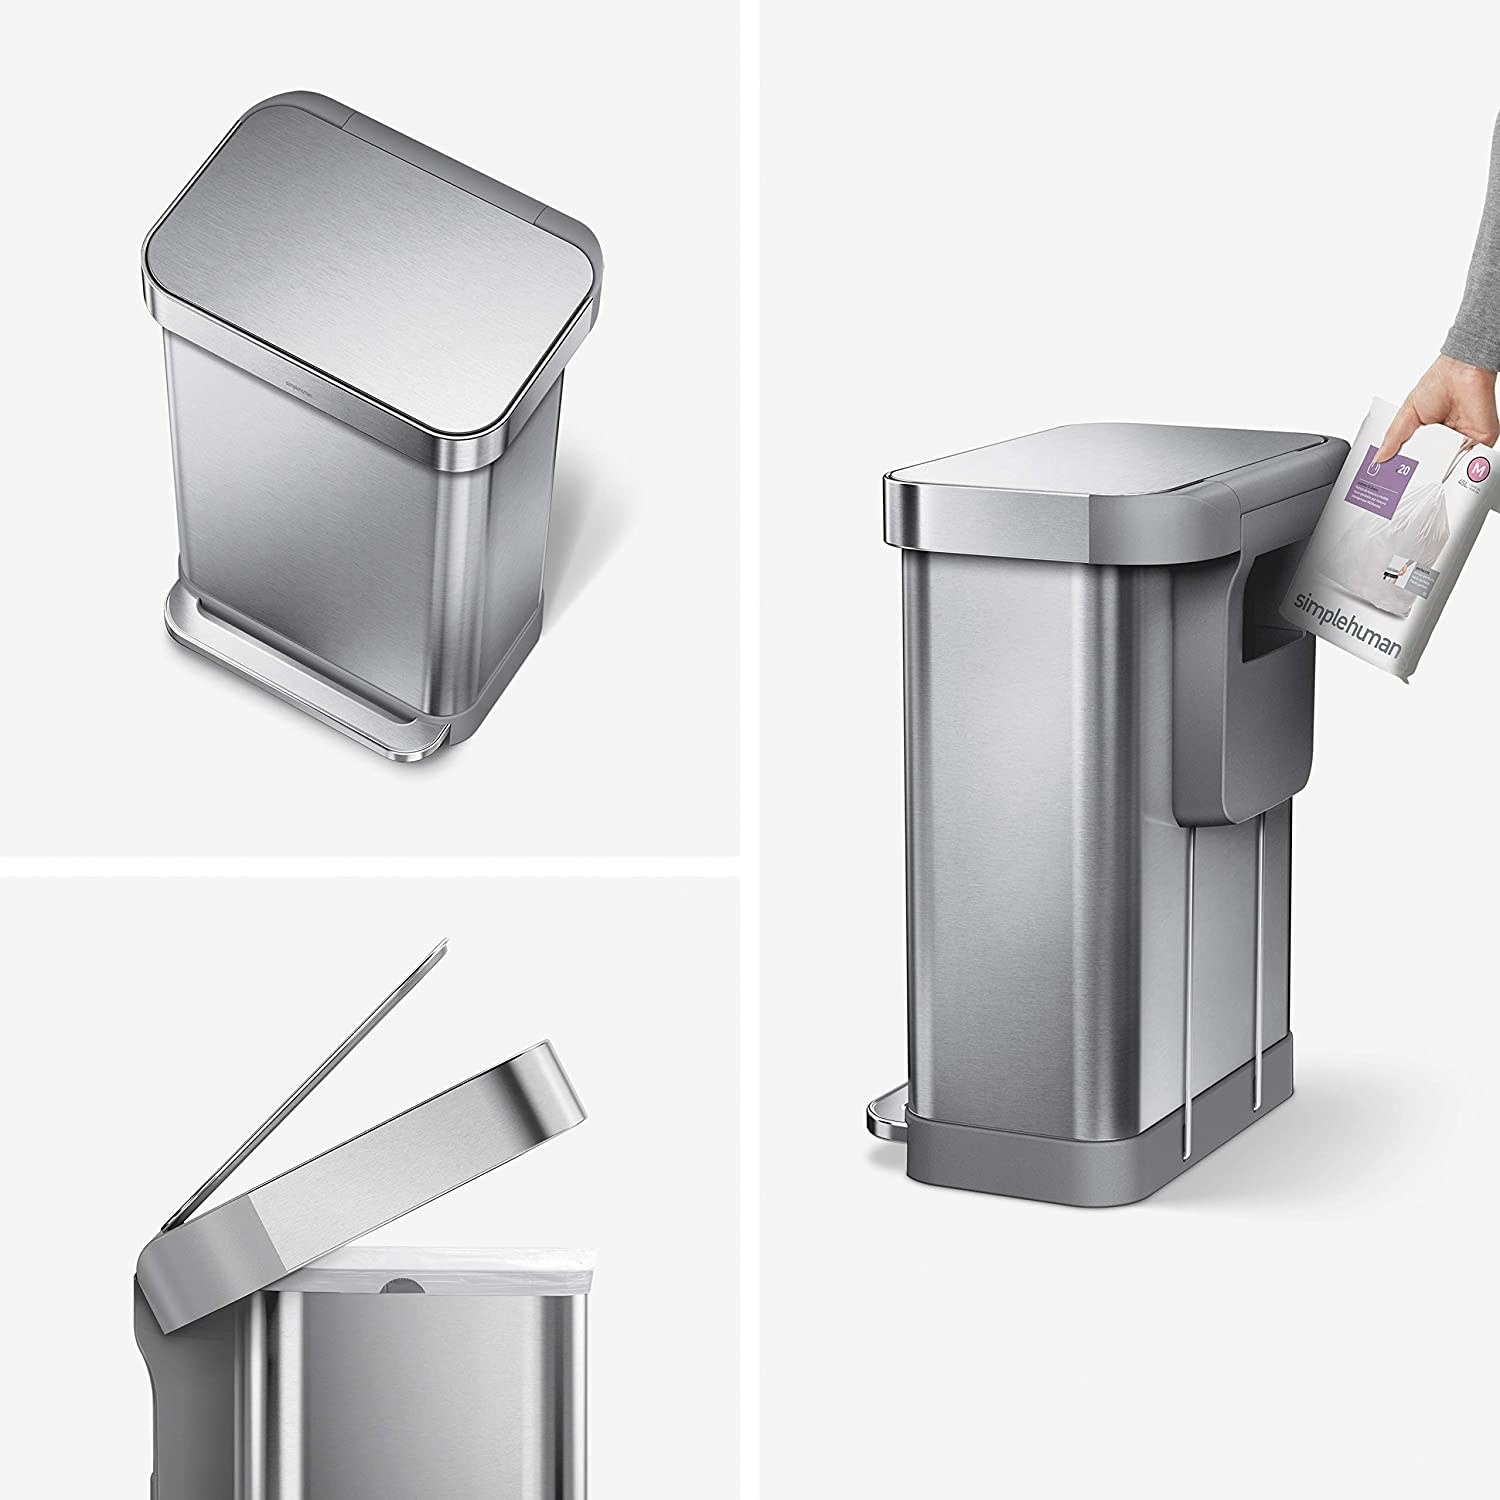 Three product photos showing the top, side, and back profile (with a spot for trash bags) of a Simple Human trash can